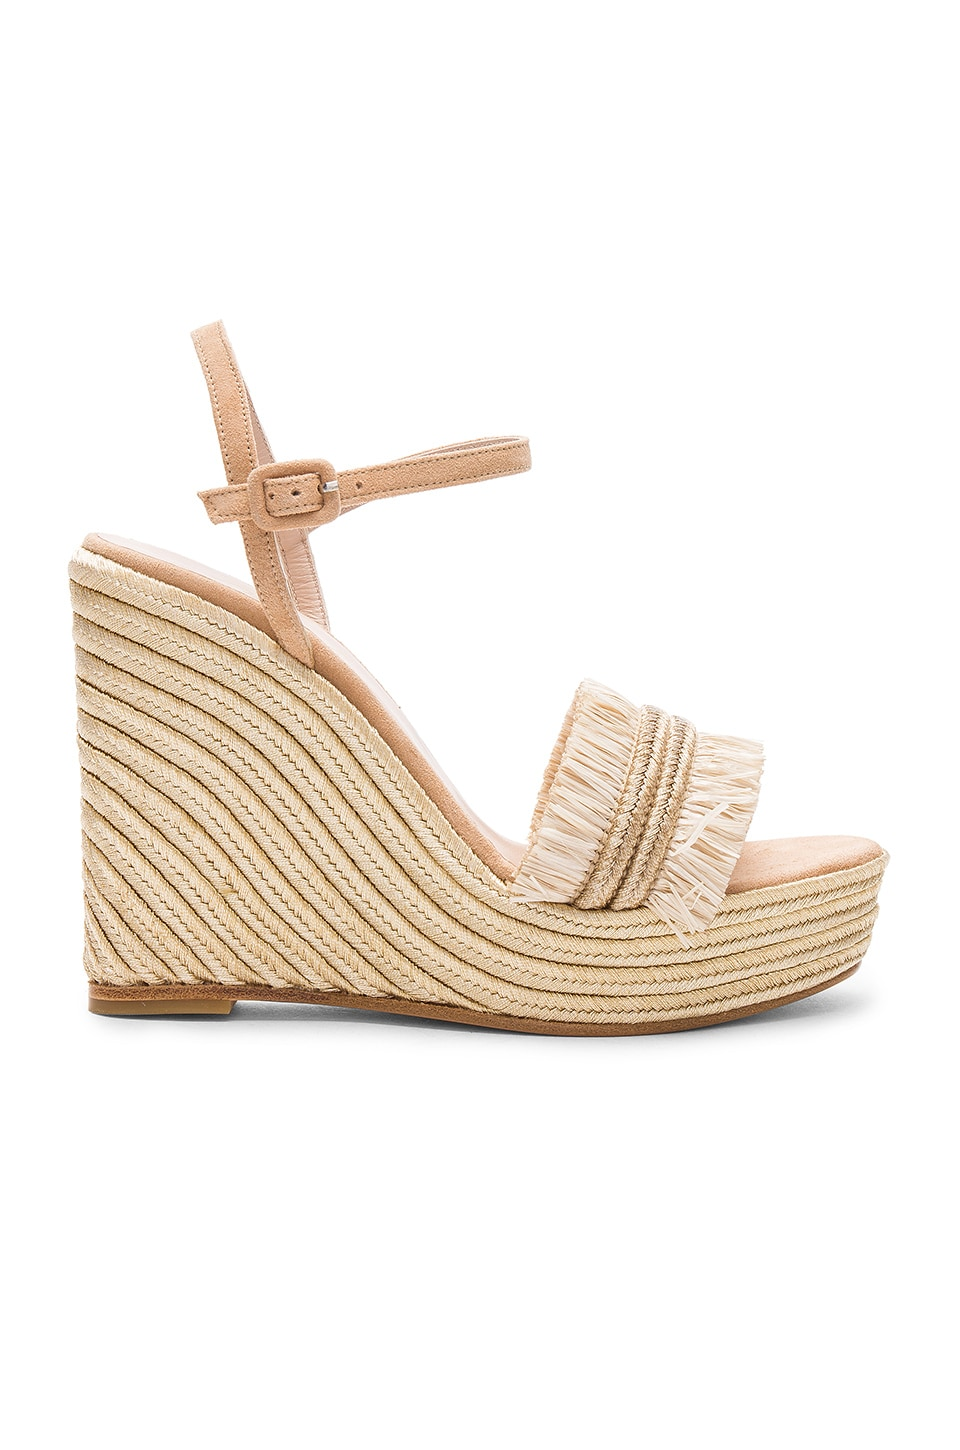 Carmelinas Mia Wedge in Sand